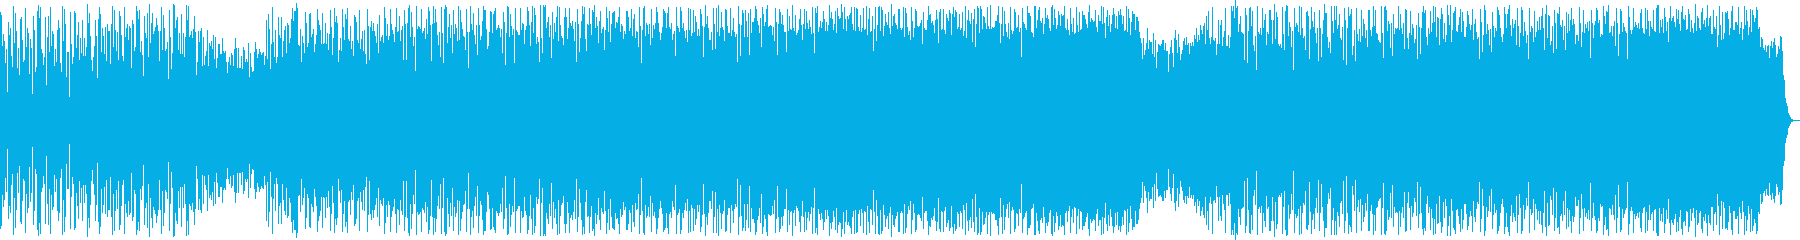 A song in which a lively scream produces a surge's reproduced waveform